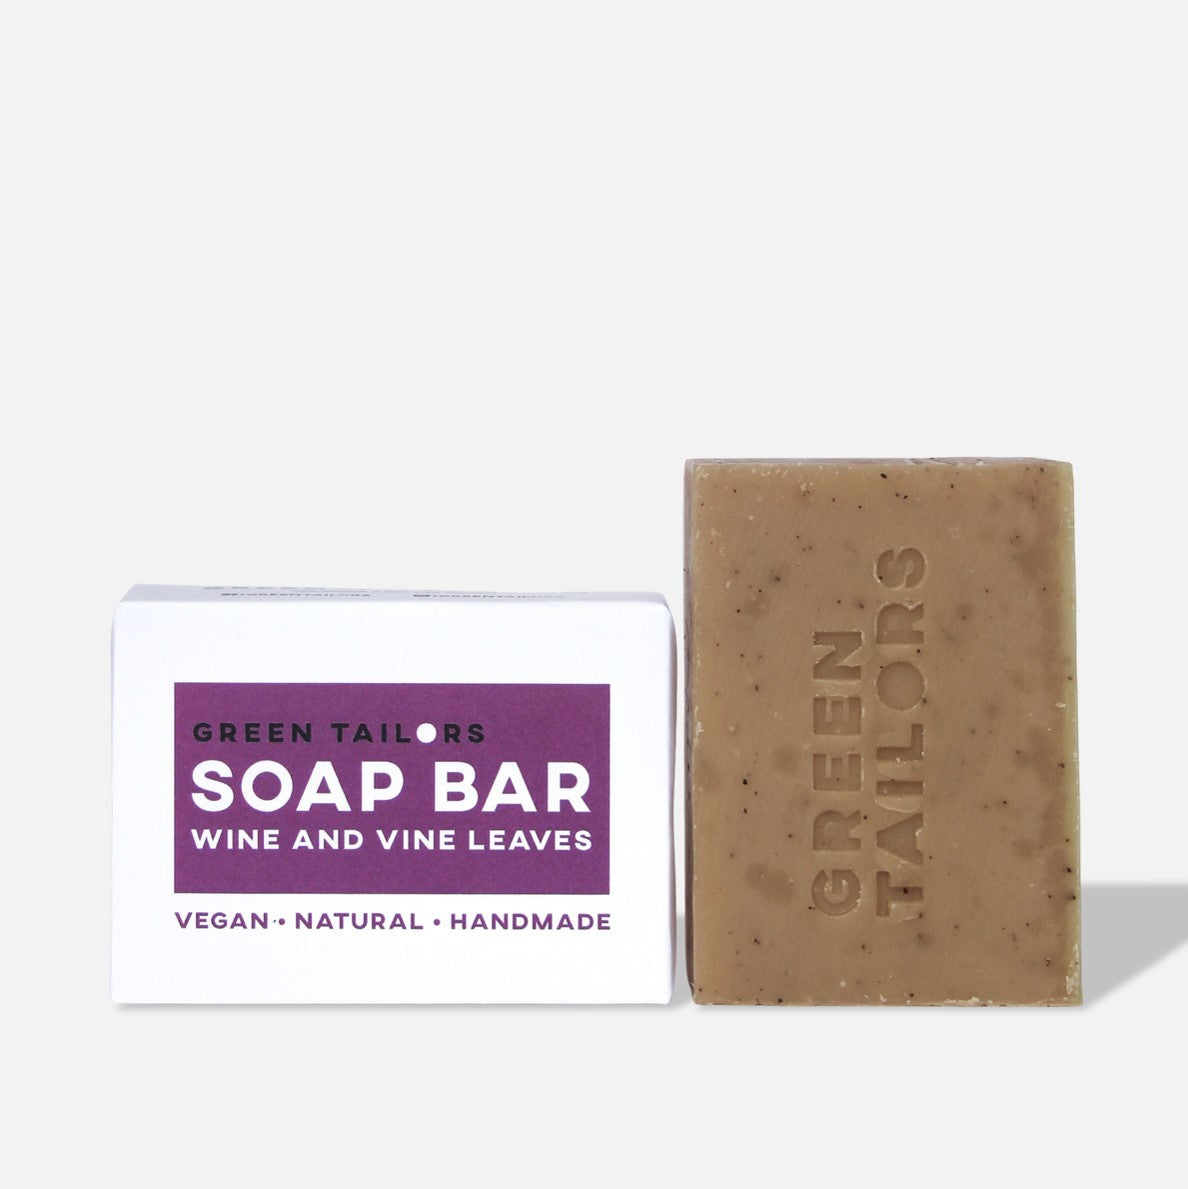 SOAP BAR | Wine and Vine leaves